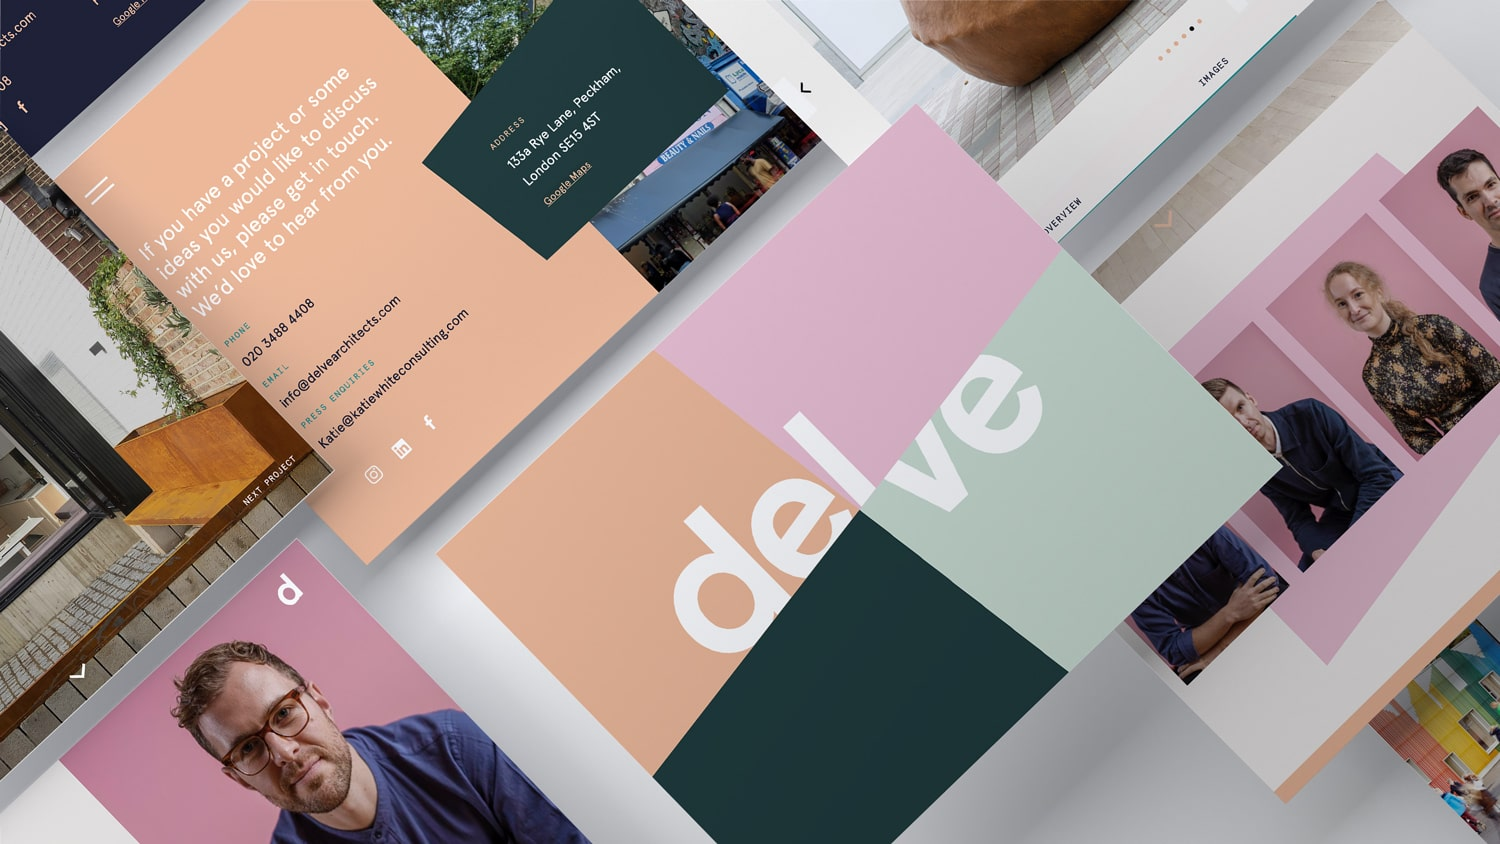 Delve are an architecture and design practice based in South London with a lot of energy to create spaces that encourage joy and connectivity between people. Working together with the Delve team we designed and developed a bespoke website and branding materials to champion their brand values and projects in a rich and engaging way.